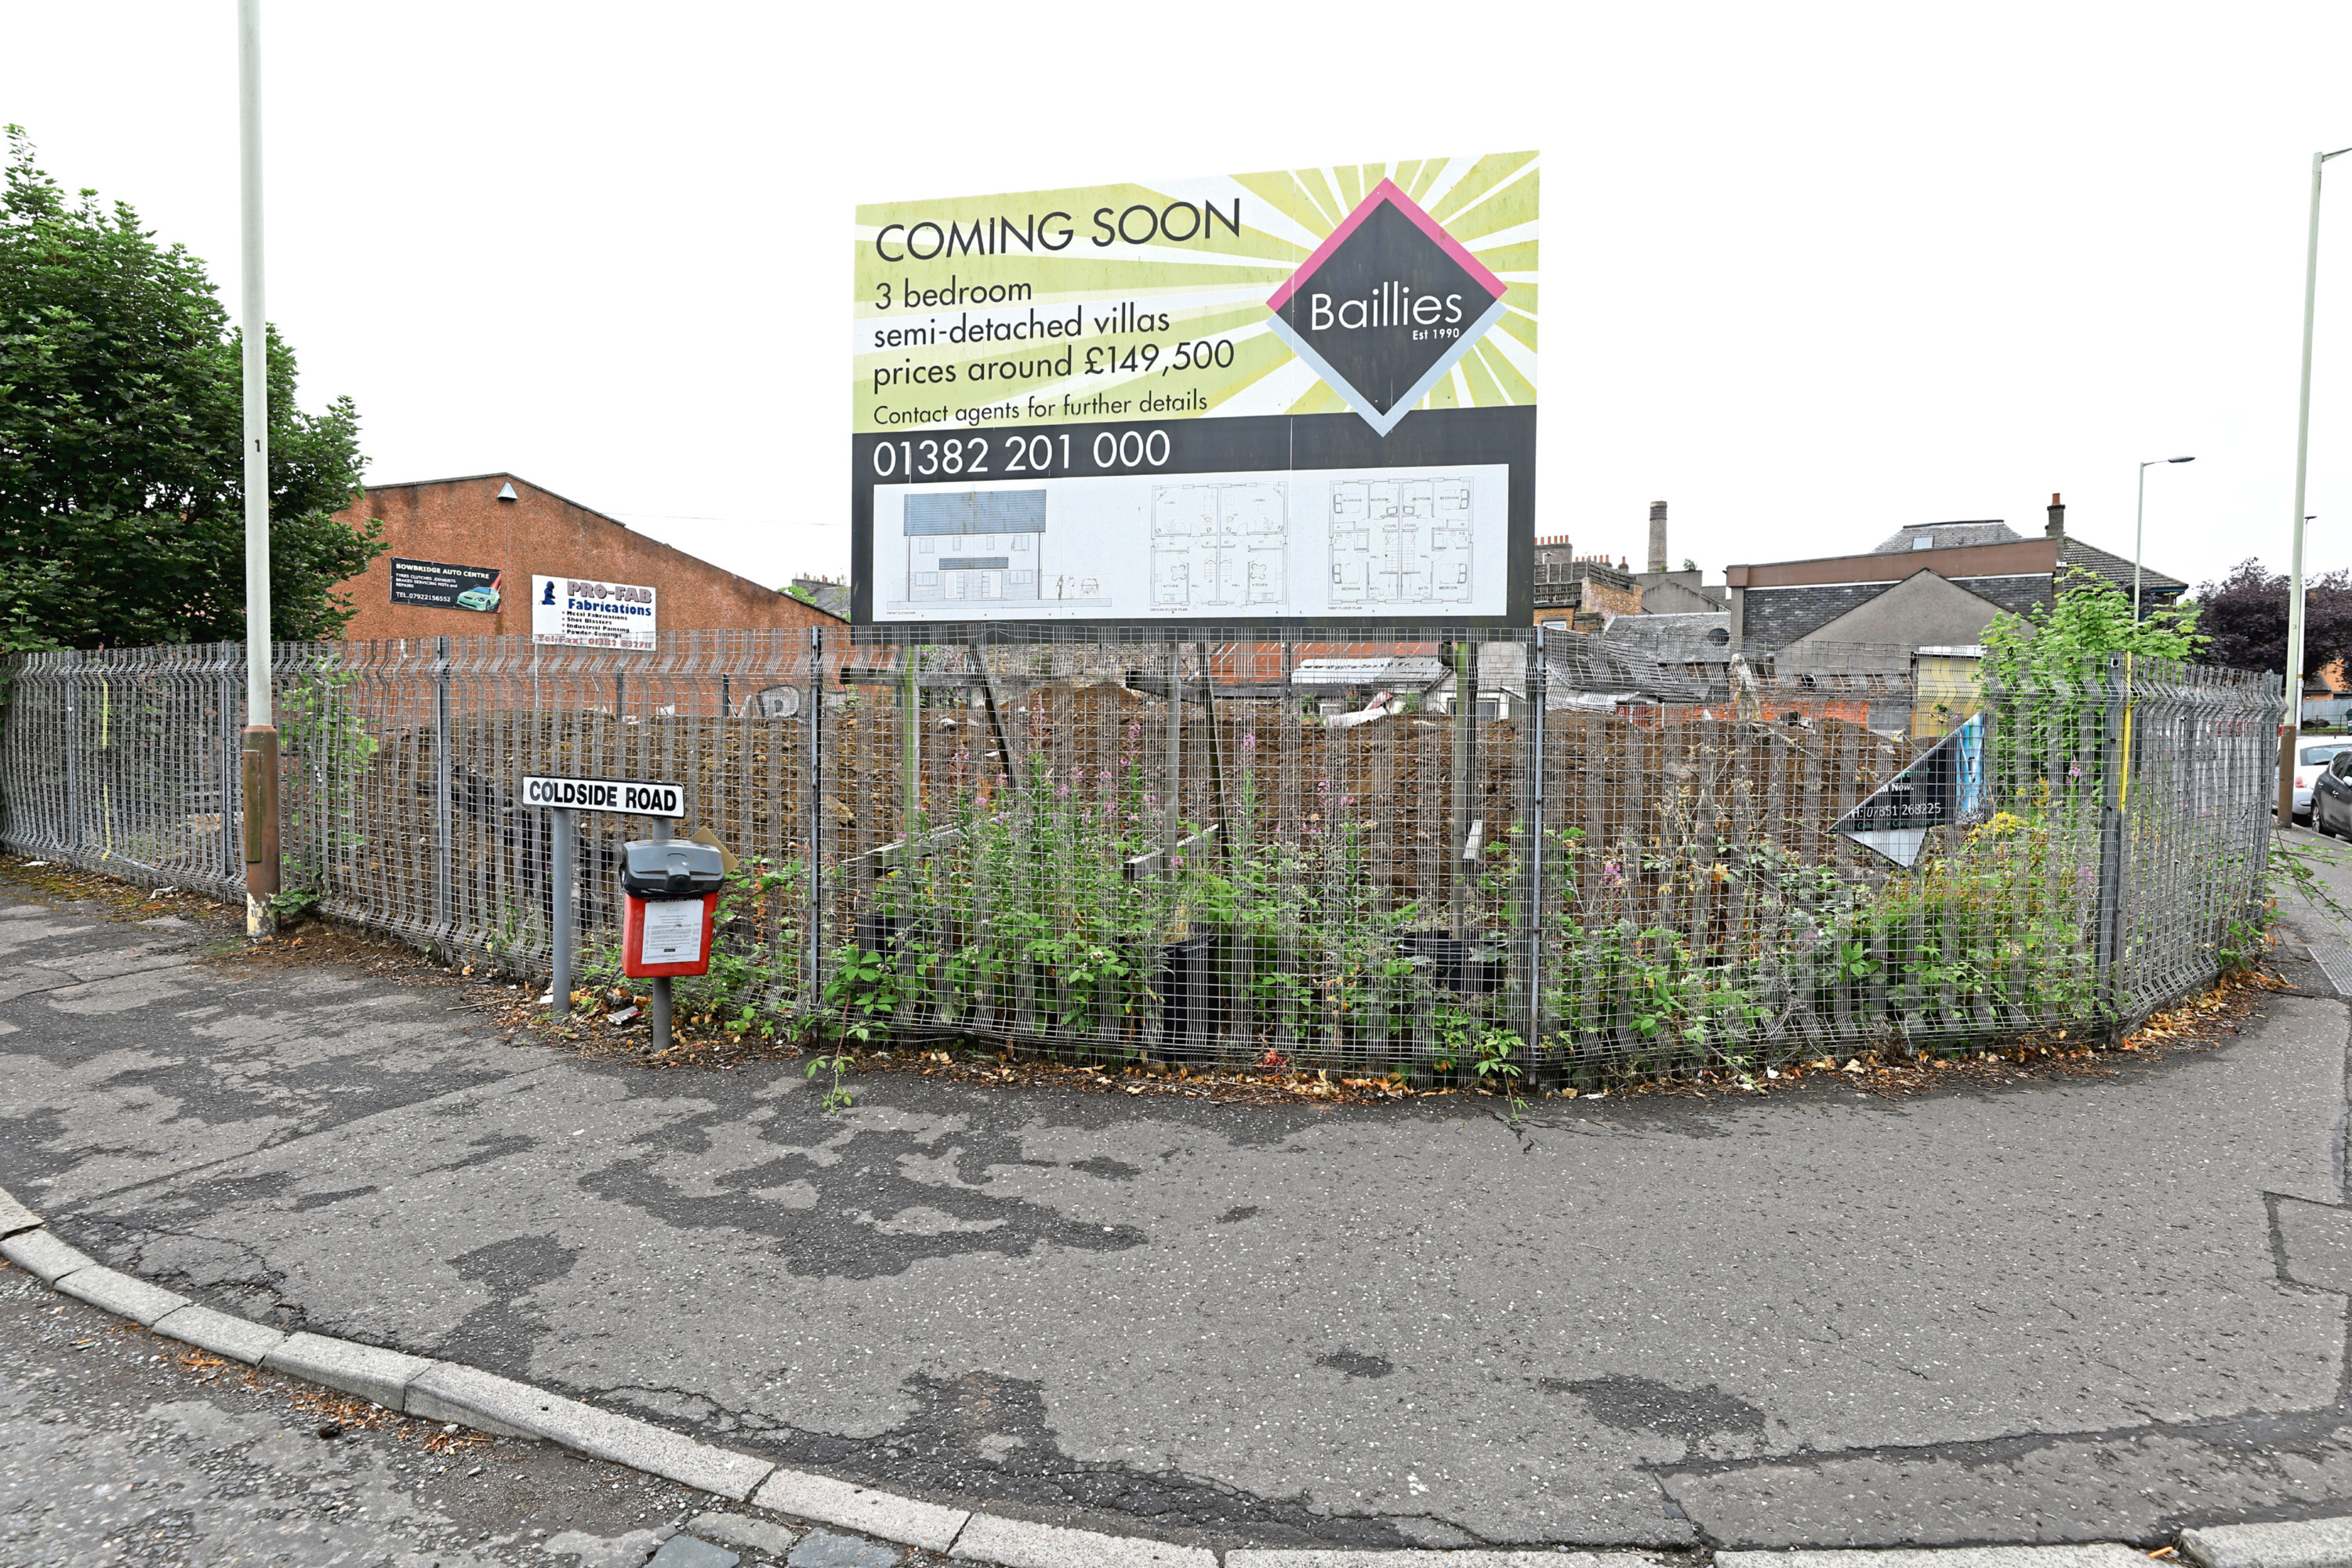 The site of the proposed new houses on the corner of Coldside Road and Hospital Street in Dundee